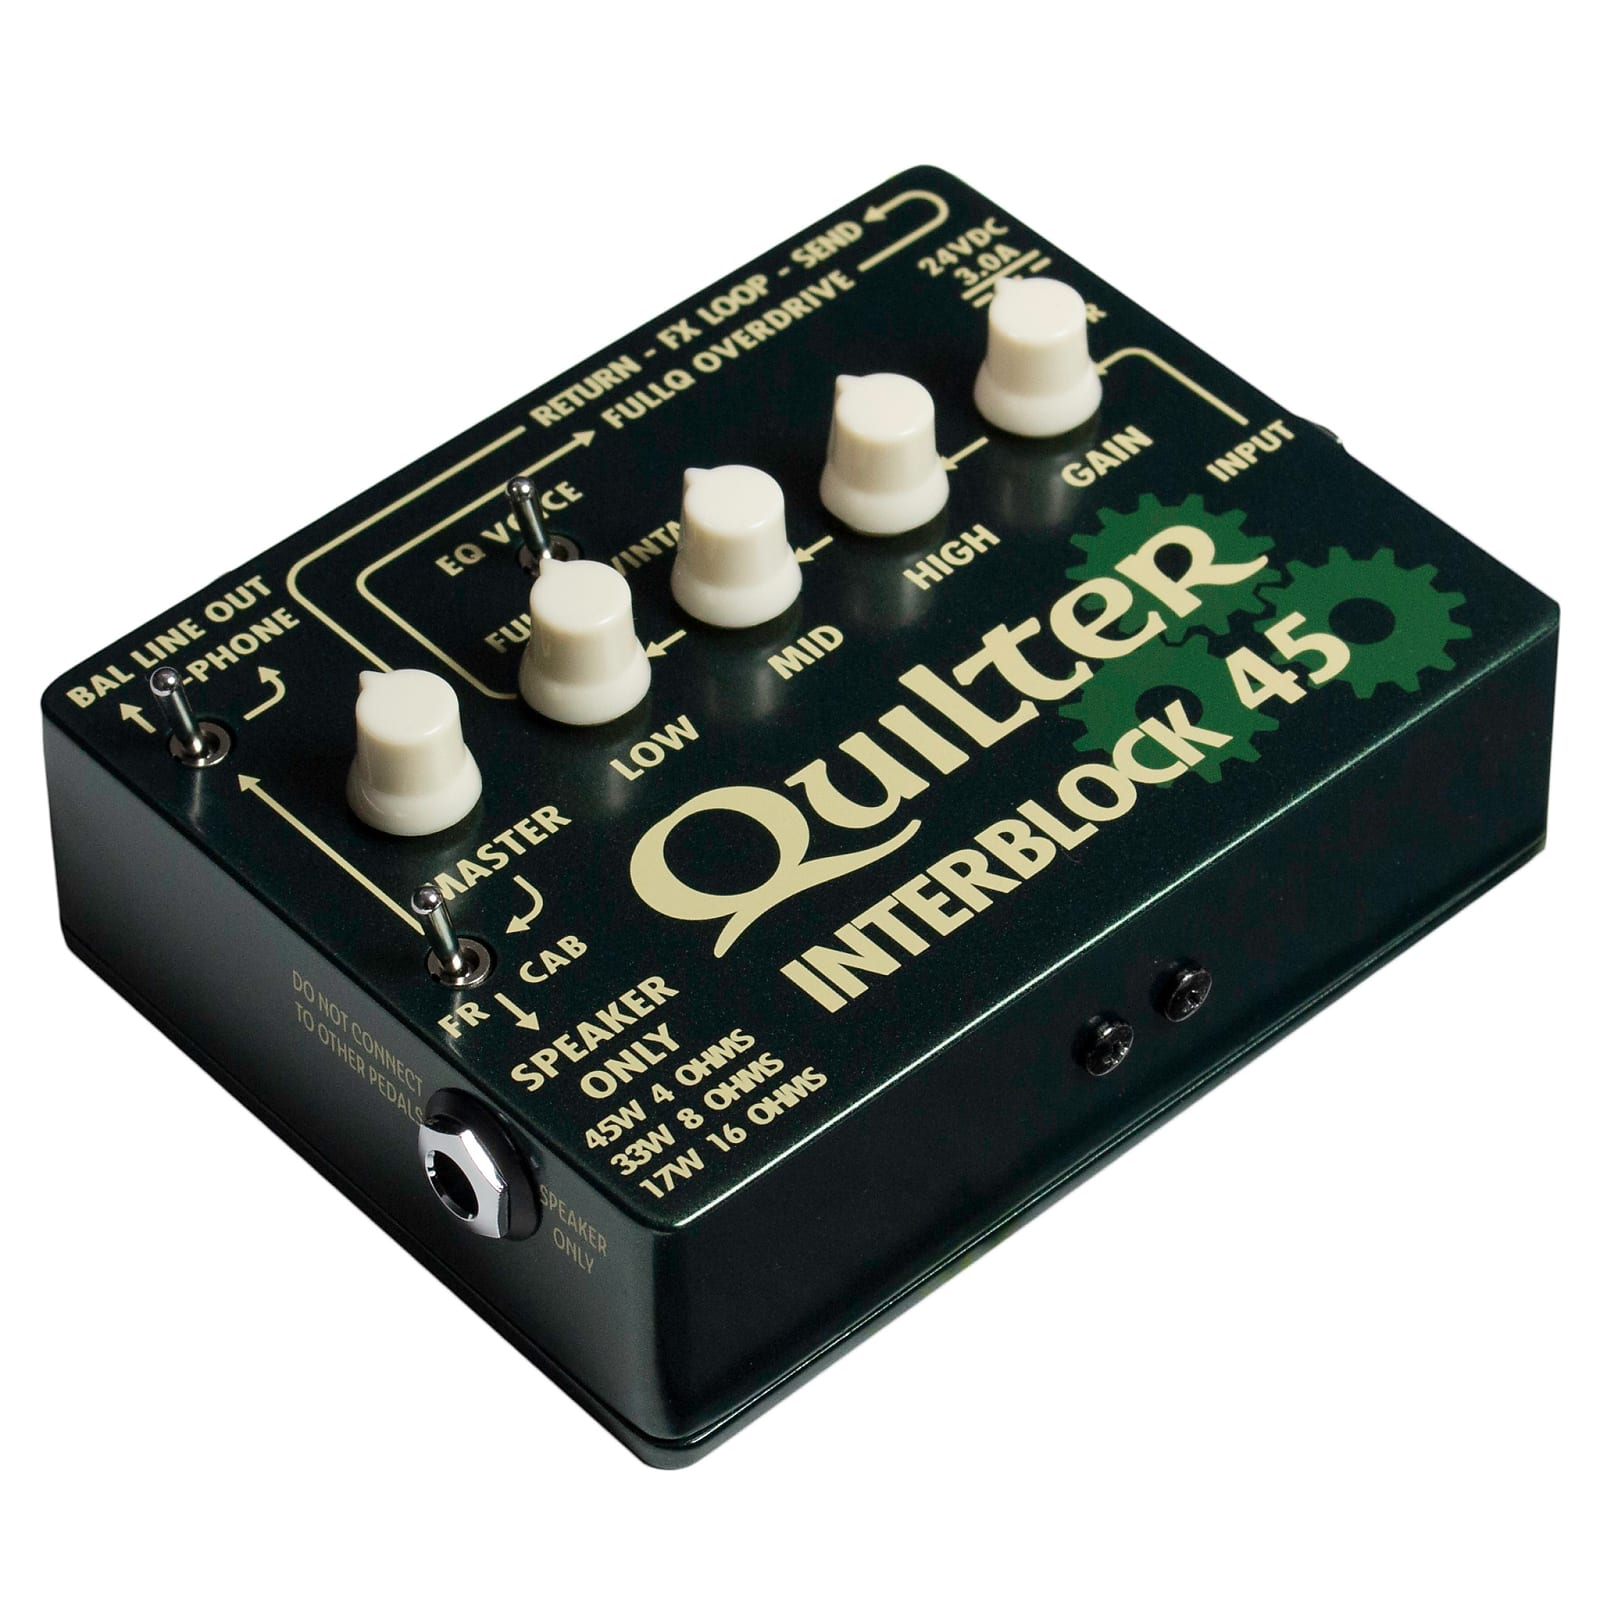 Quilter InterBlock 45 Pedal Sized 45W Guitar Amplifier Head